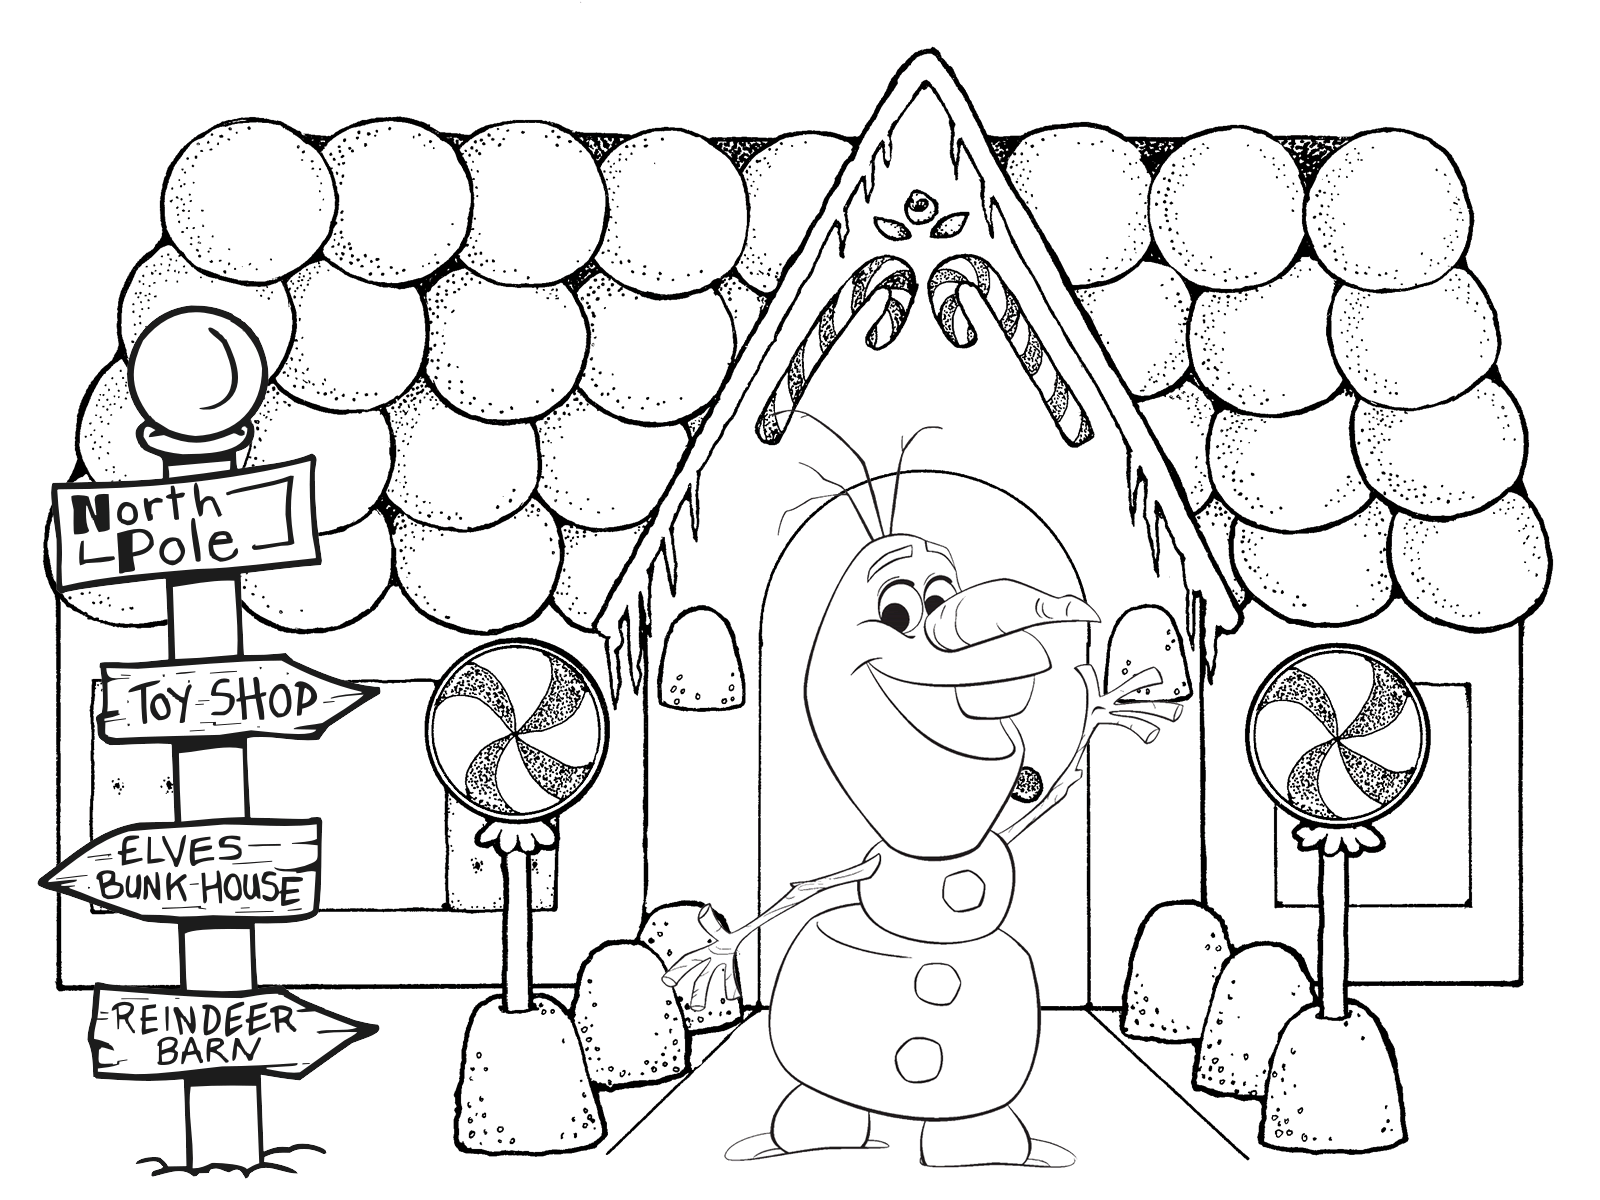 Free printable coloring pages gingerbread house - Free Printable Gingerbread House Coloring Pages Nice Coloring Pages